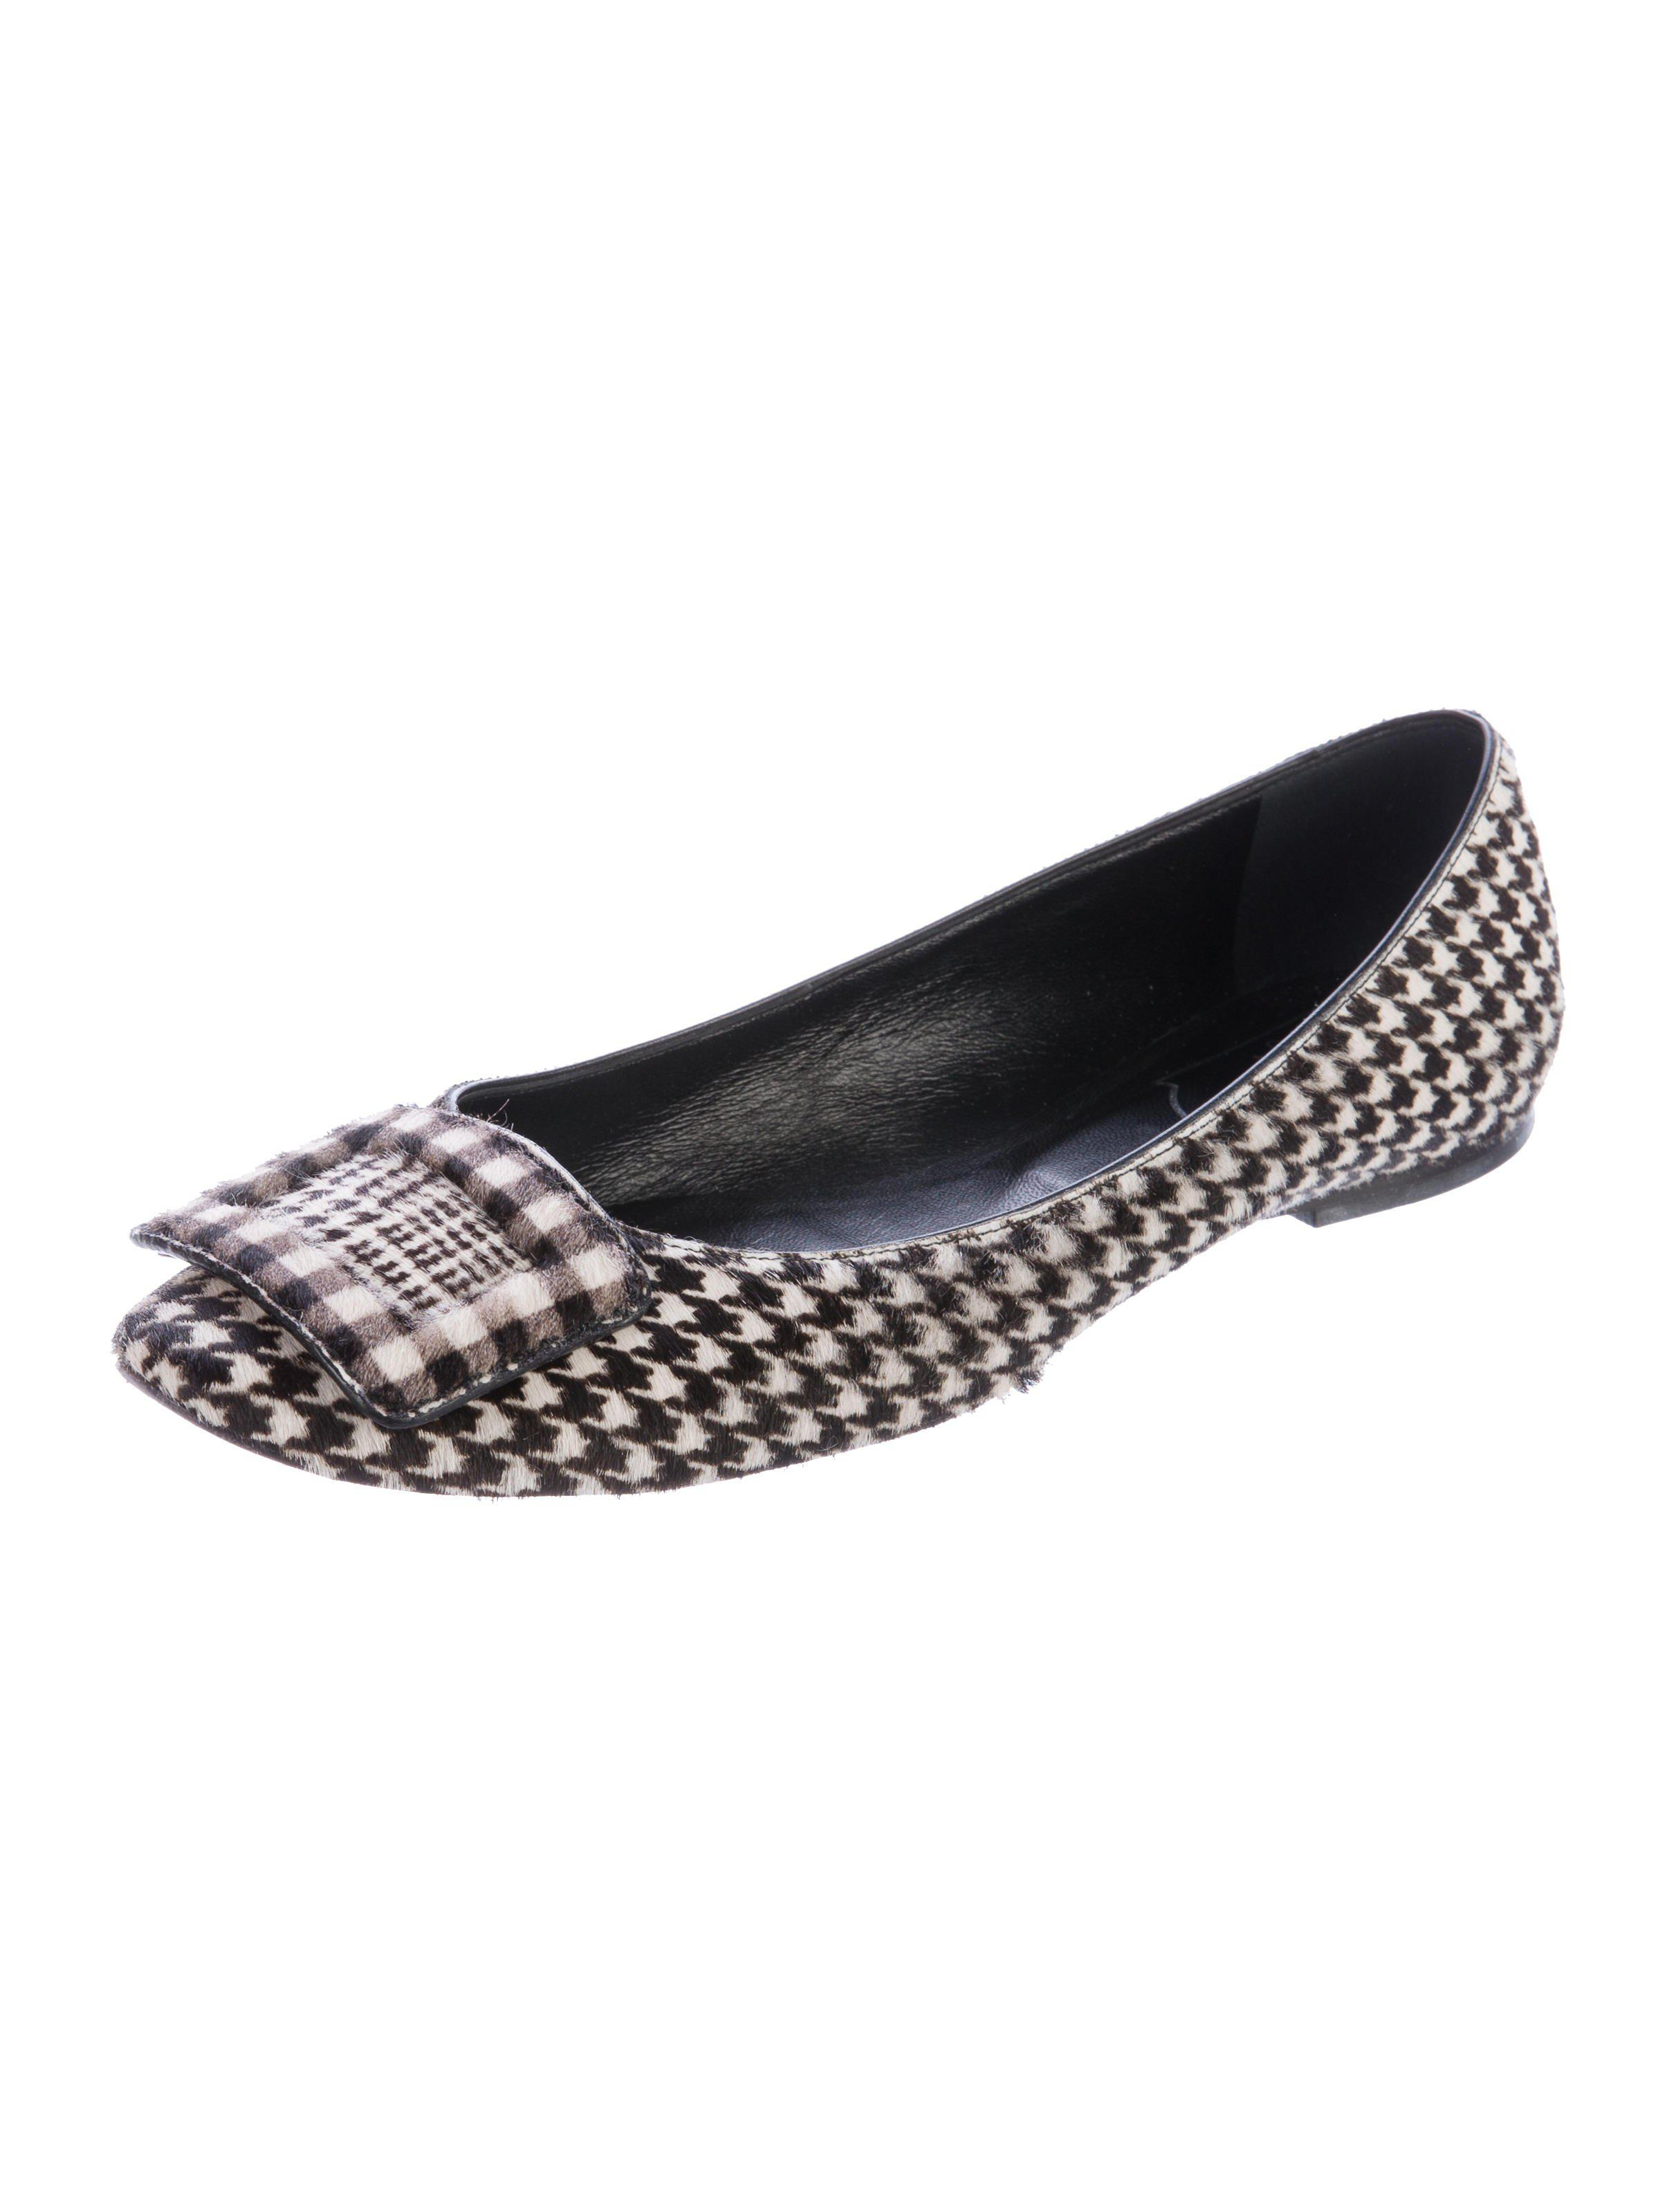 outlet best prices free shipping professional Roger Vivier Ponyhair Round-Toe Loafers cheap 2015 new buy cheap real hPmMhoi5Ov